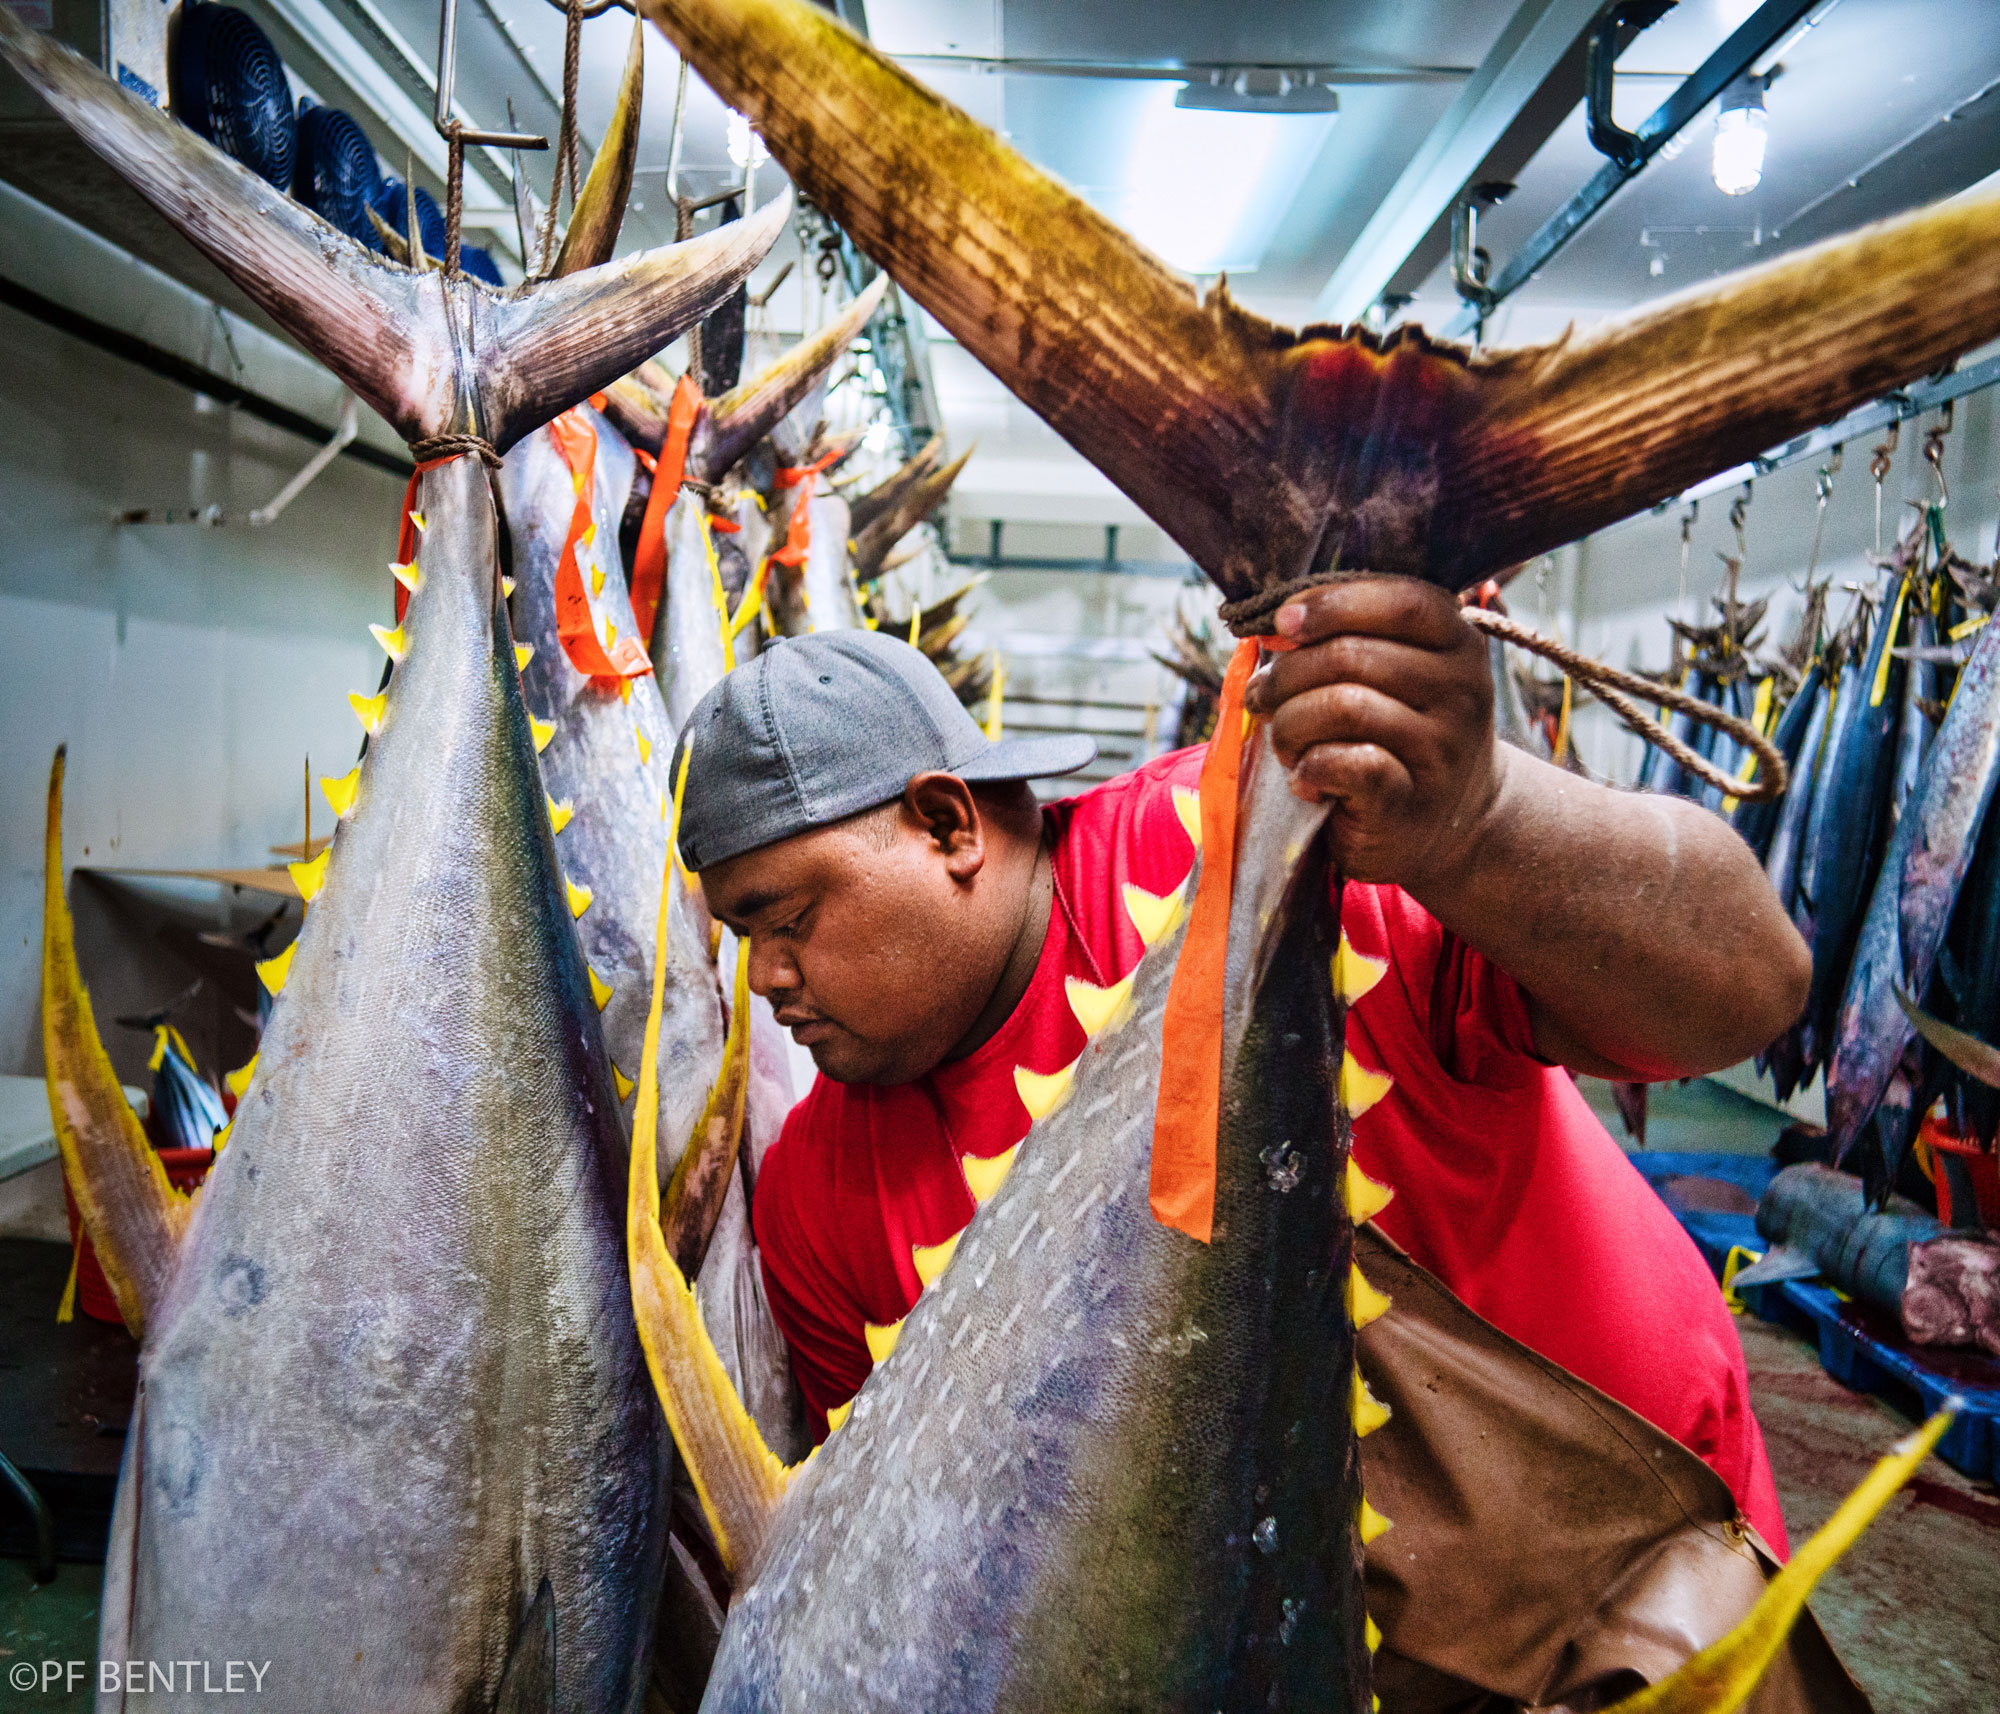 Bossy Sitiru hangs new incoming ahi in the cold storage room at the Suisan Fish Market in Hilo.